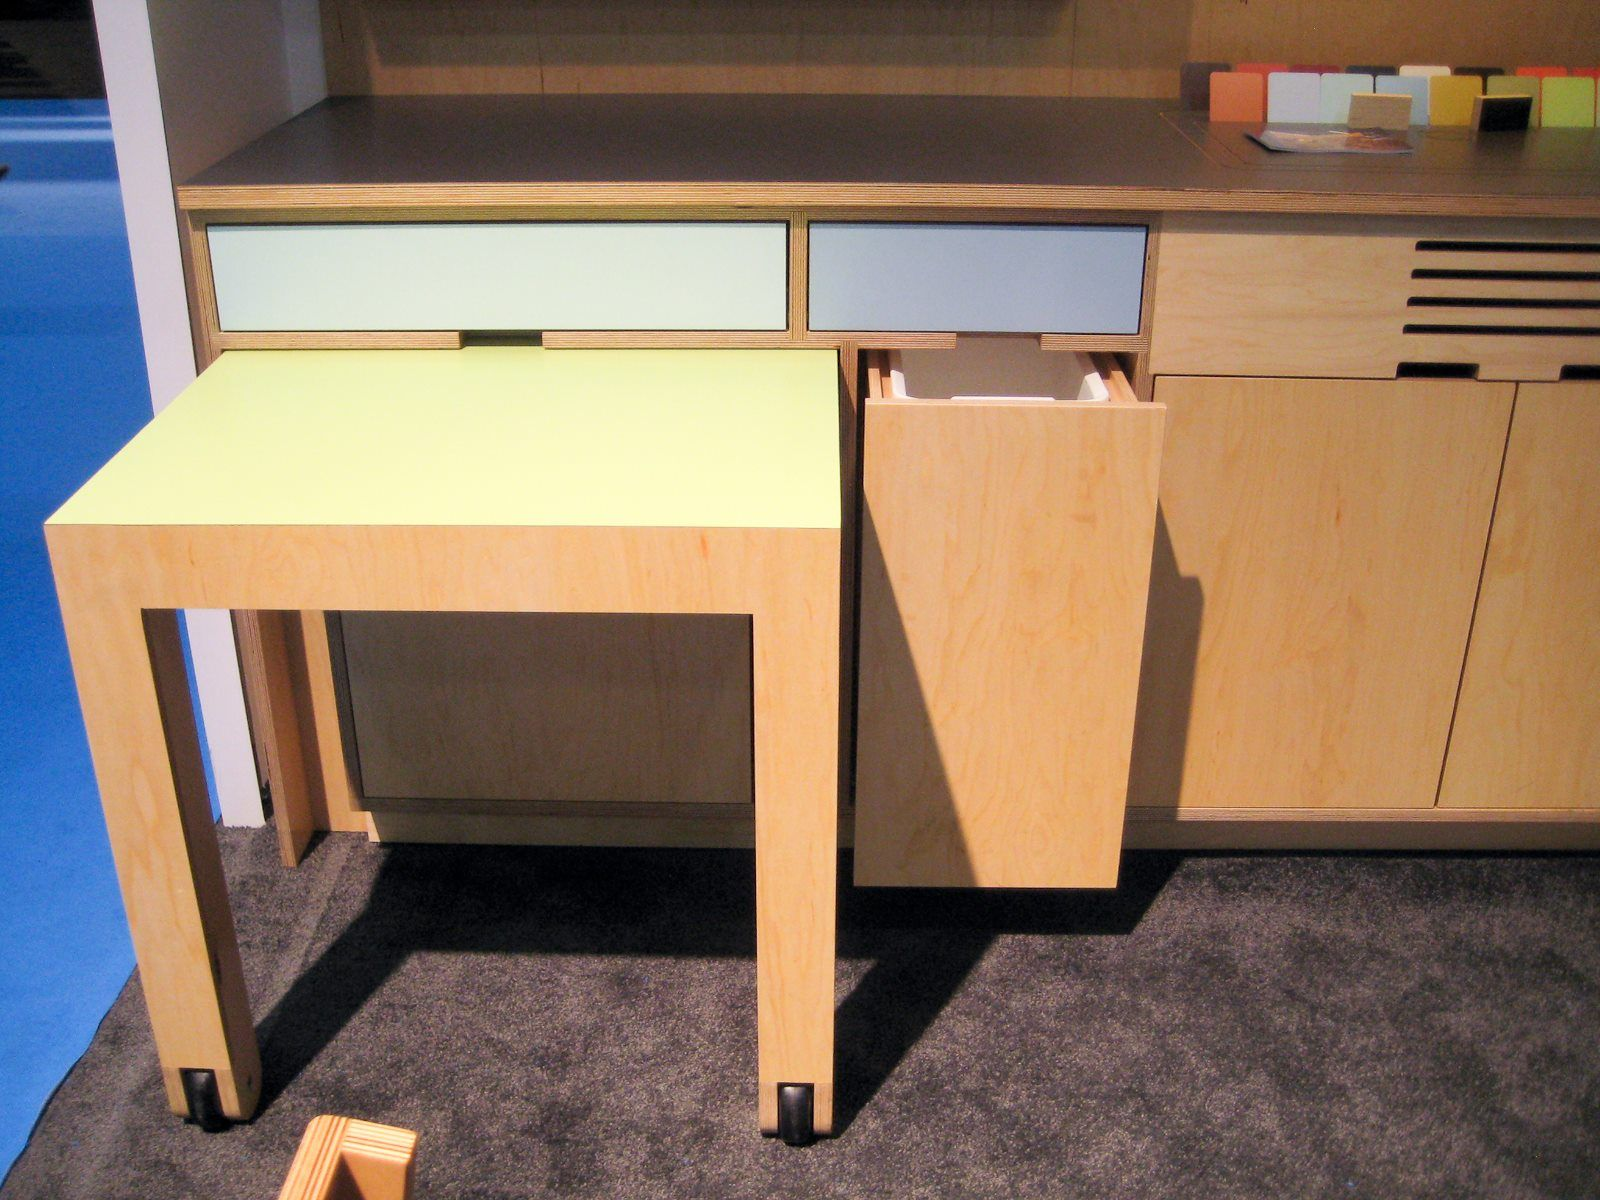 Roll Out Table Integrated Into The Lowers And Single Trash Pullout